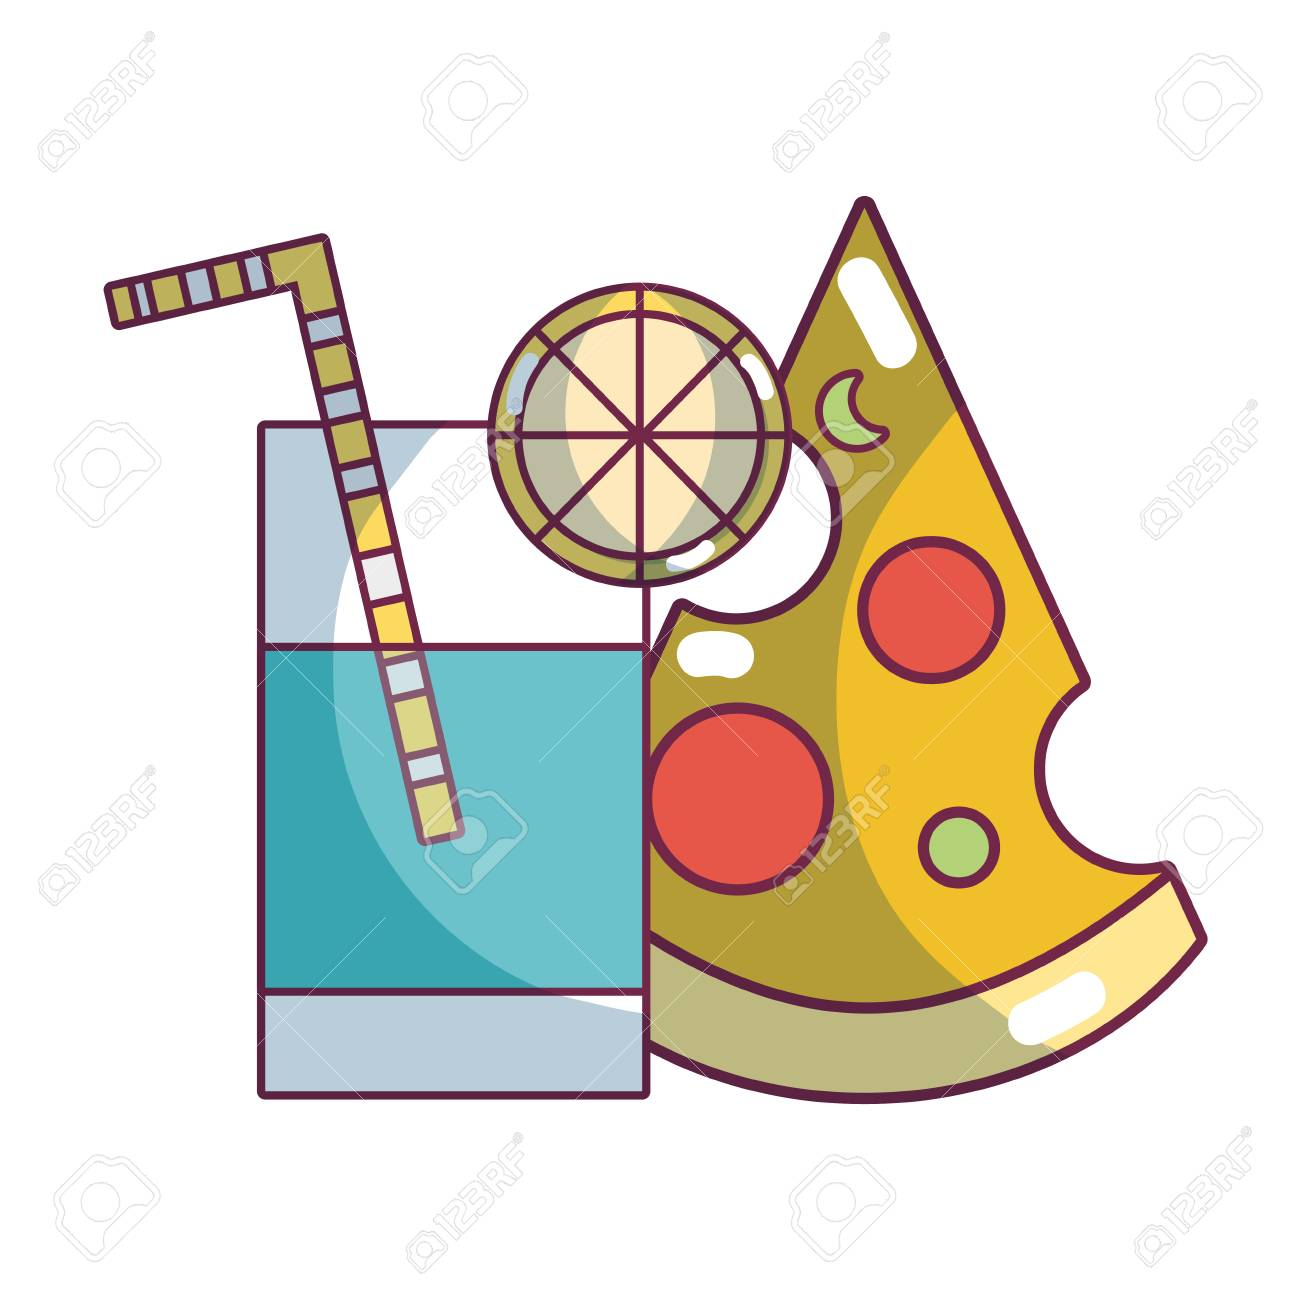 Pizza and lemonade cup delicious food vector illustration graphic